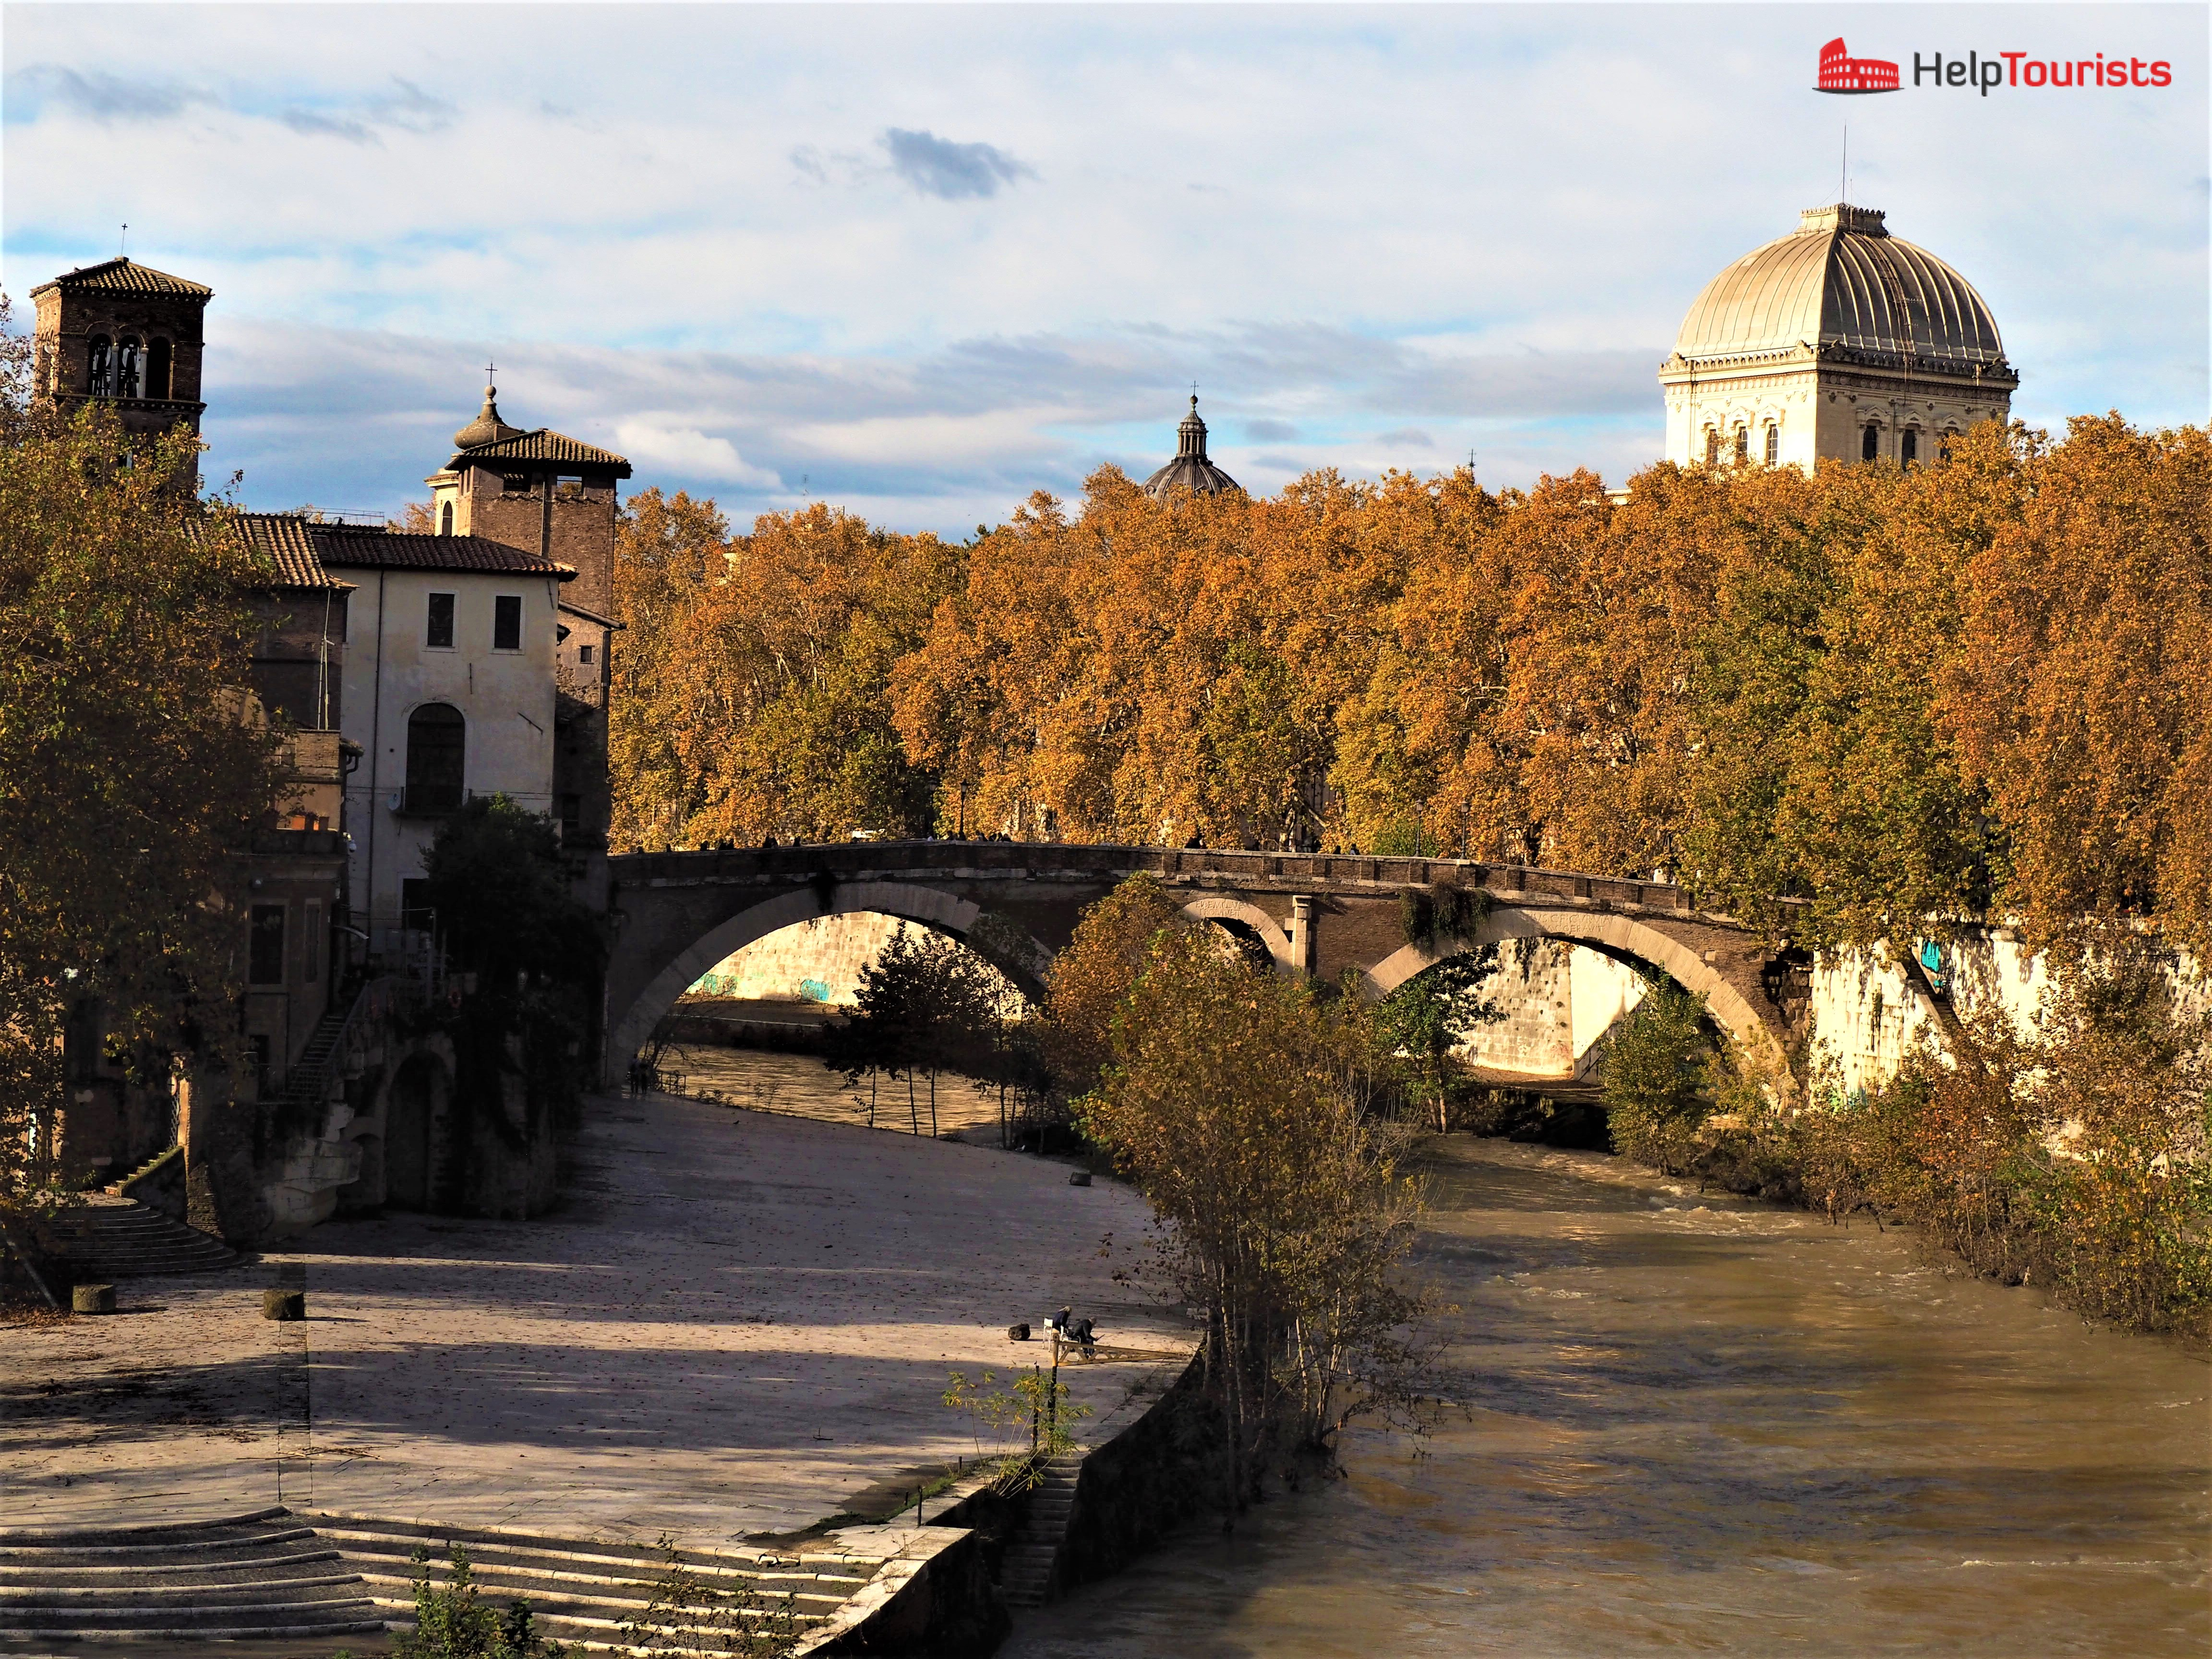 Rome autumn bridge Tiber